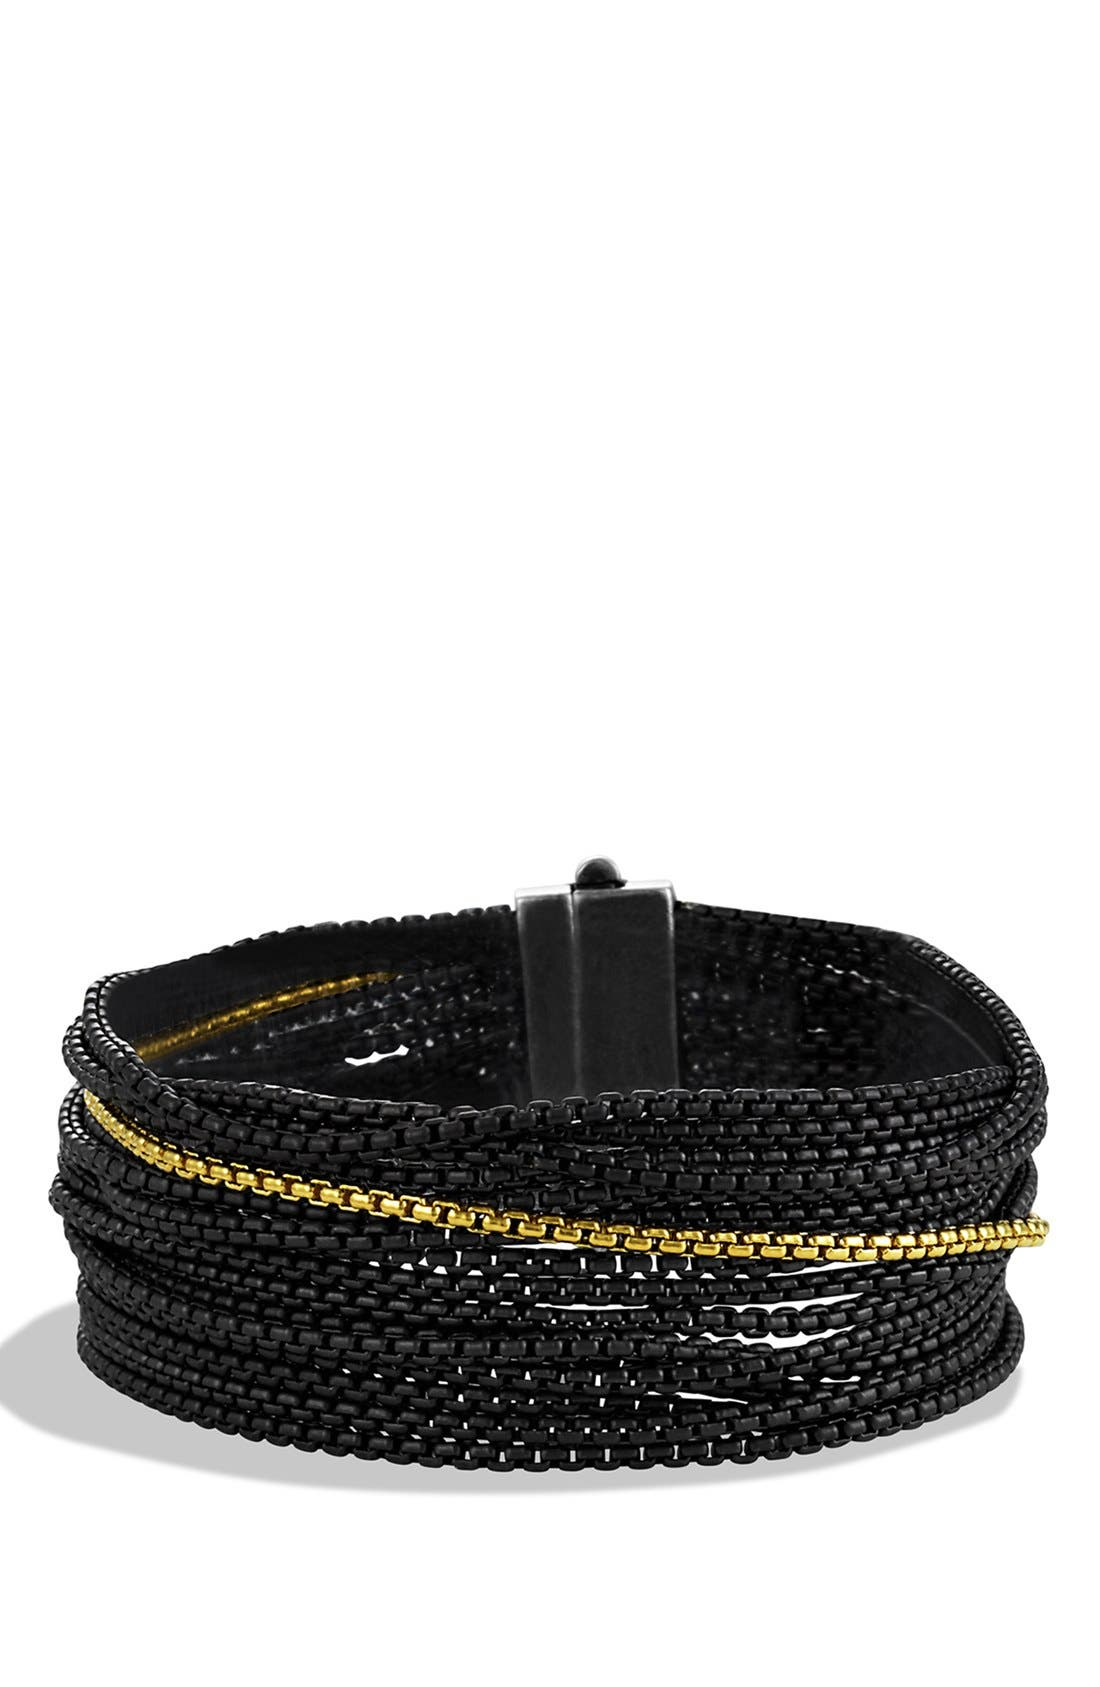 Alternate Image 1 Selected - David Yurman Sixteen-Row Chain Bracelet with Gold